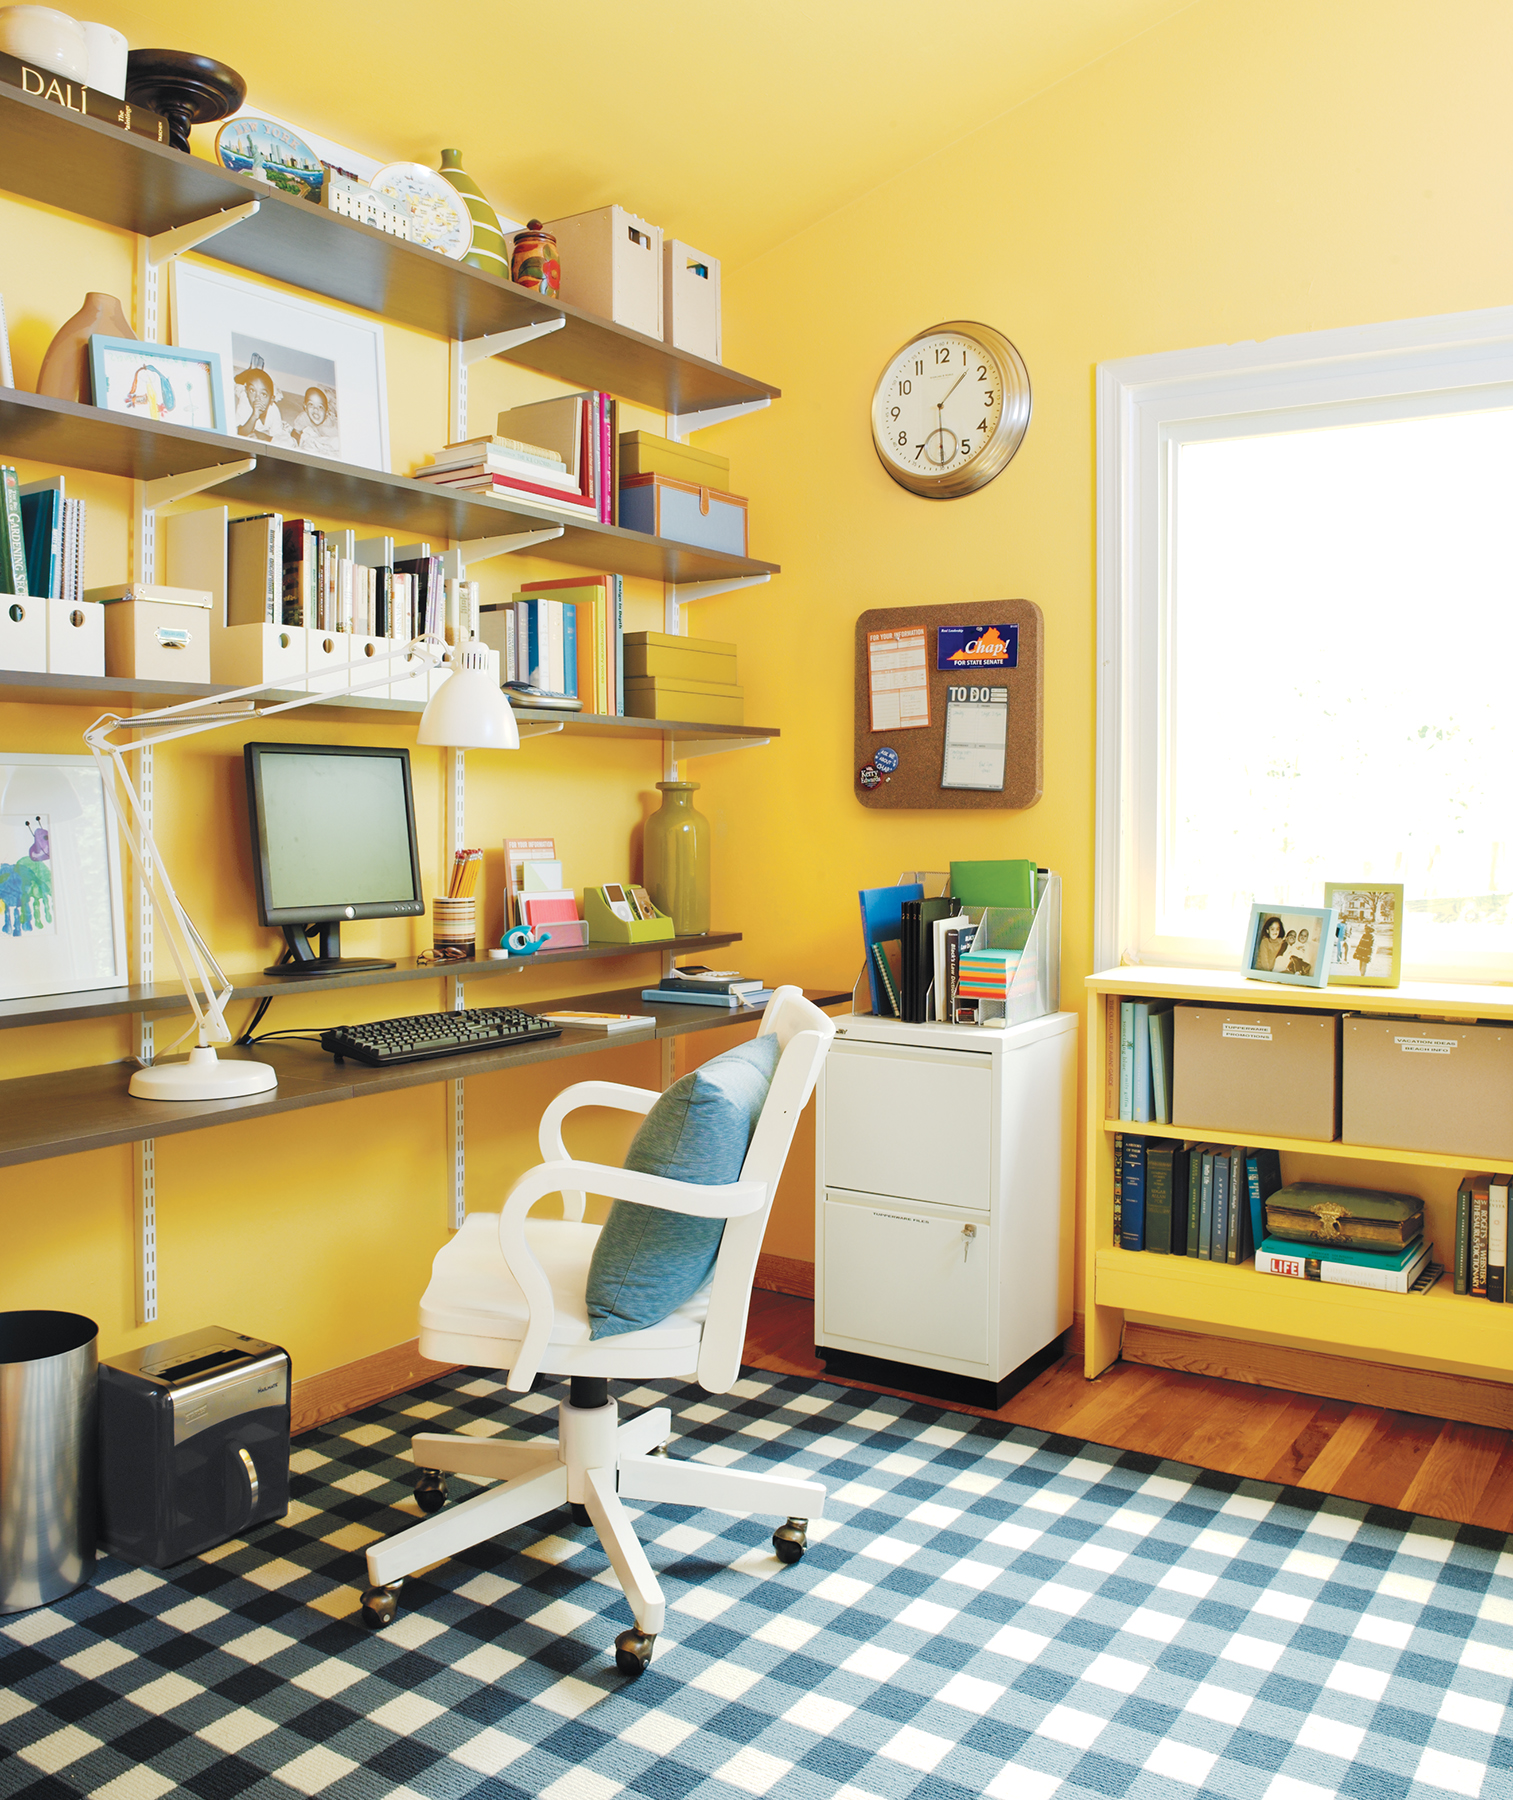 21 Ideas for an Organized Home Office | Real Simple